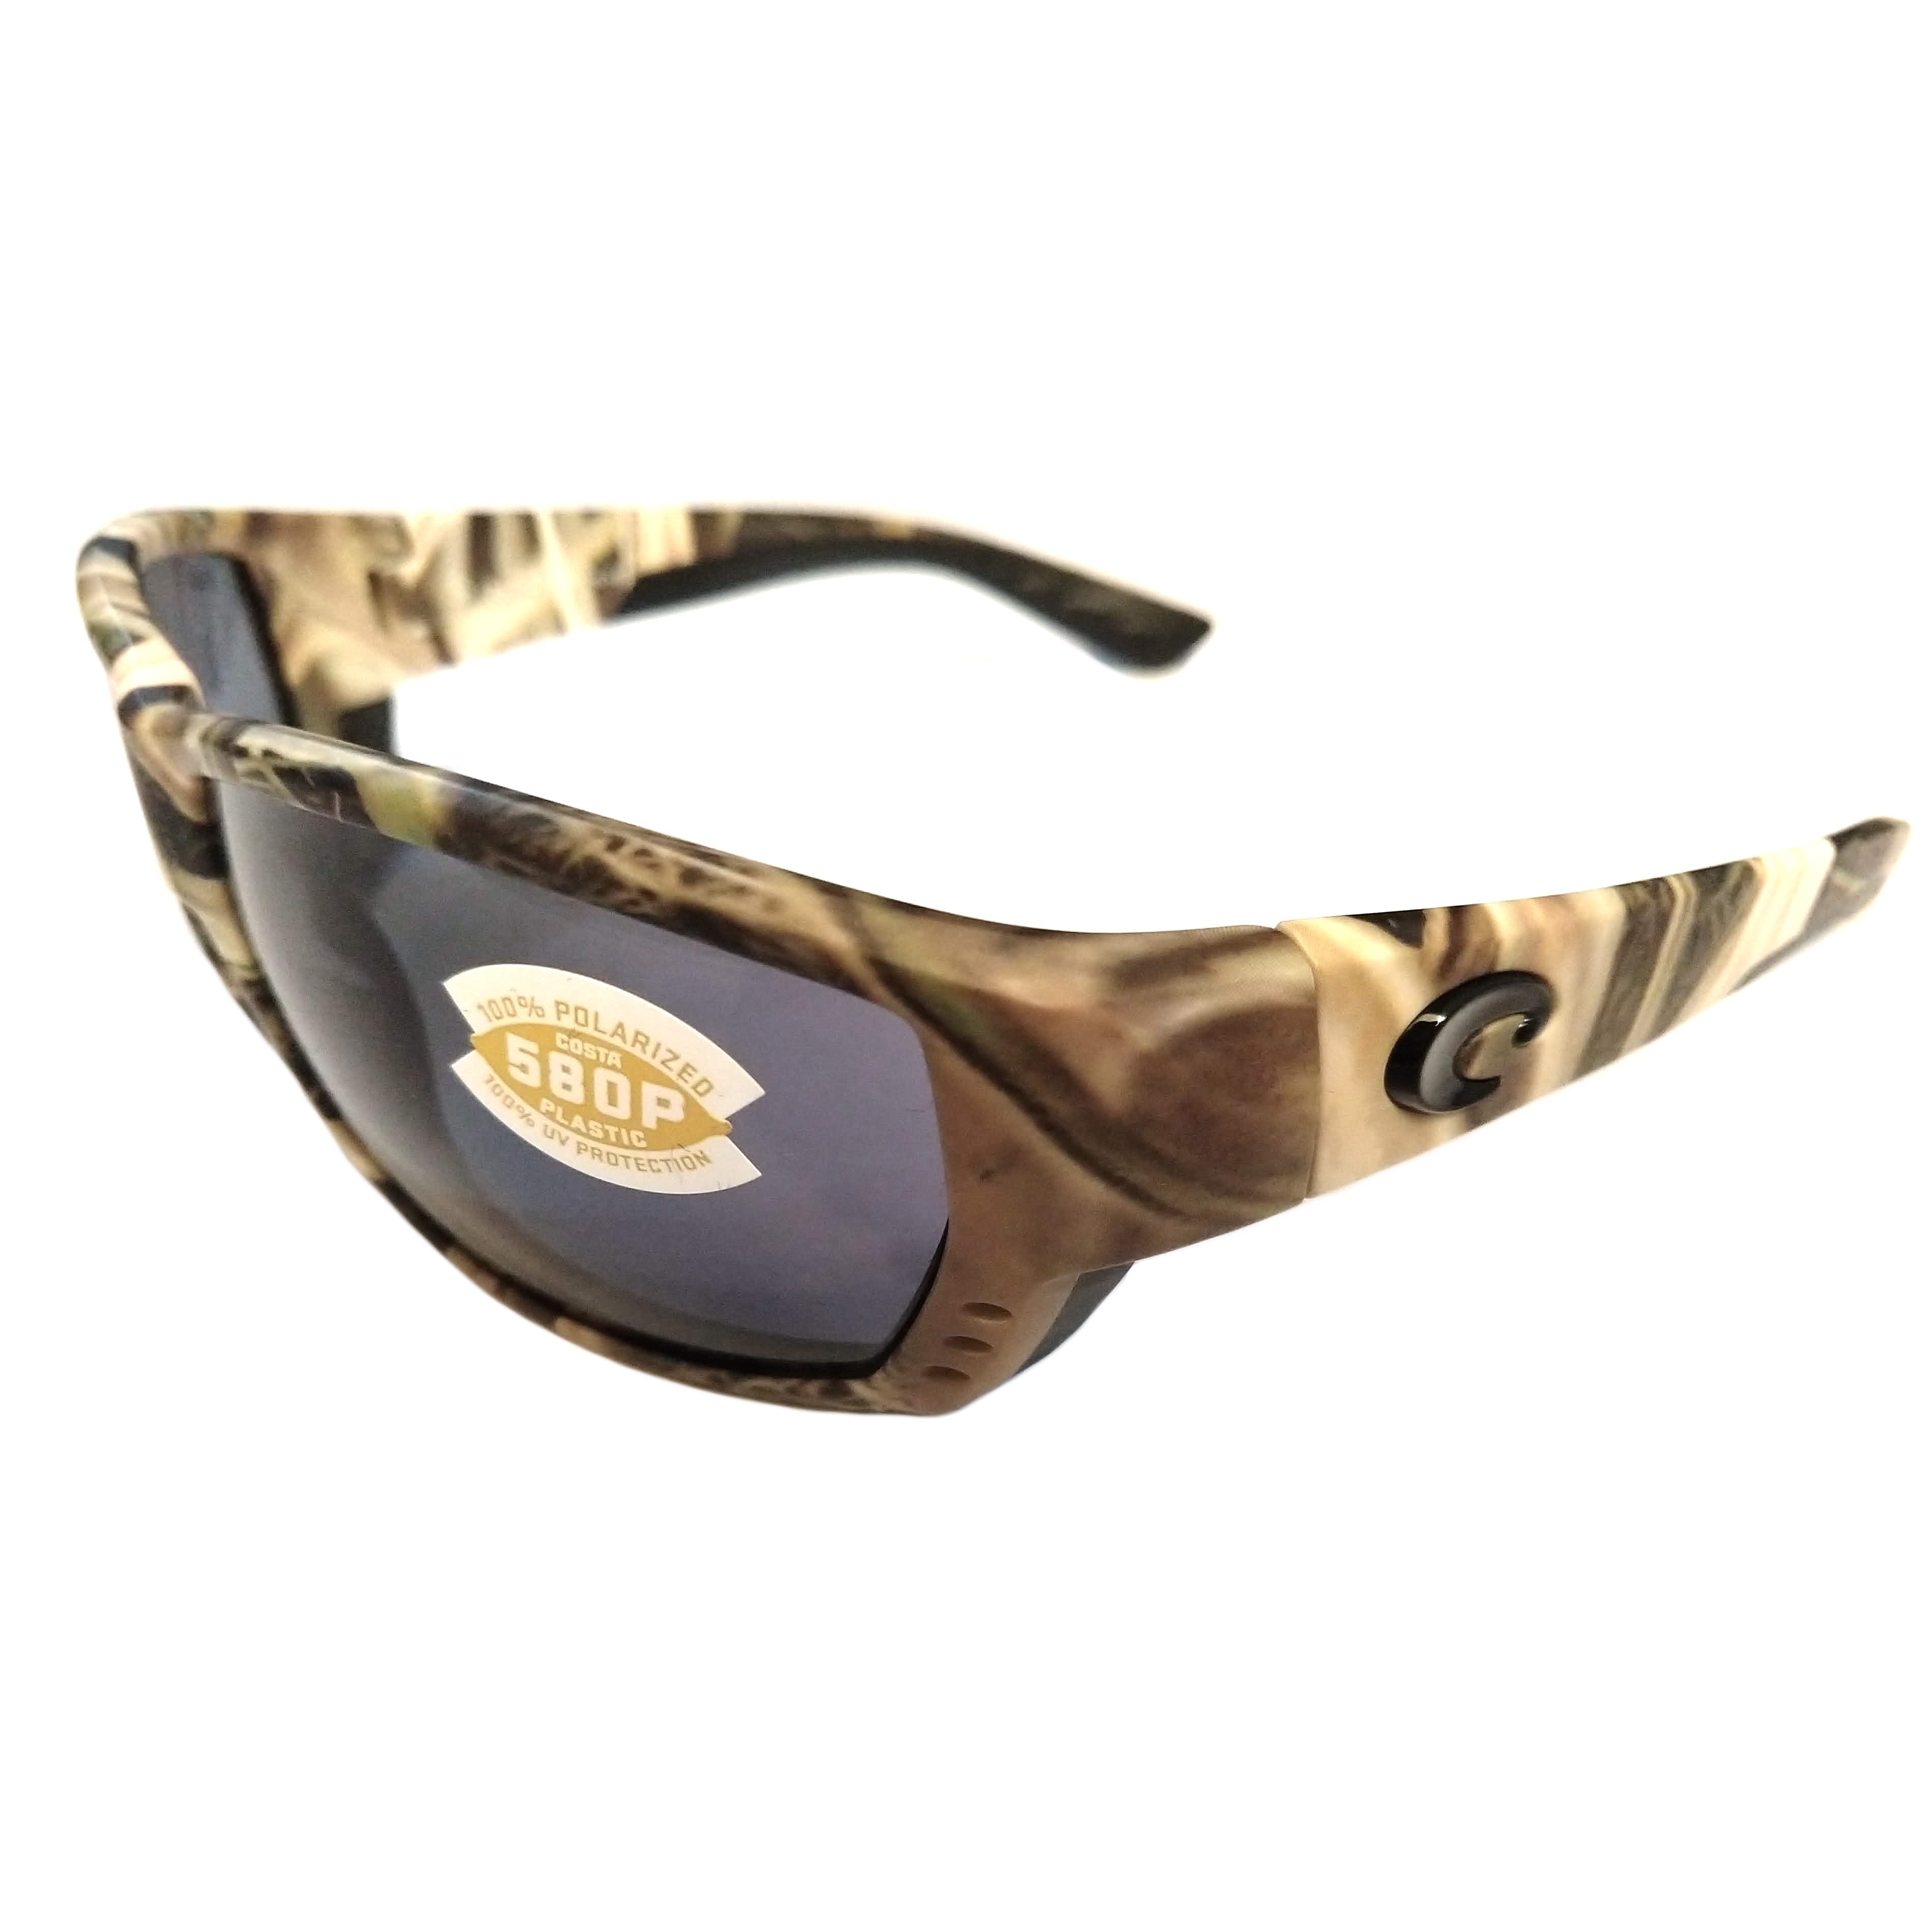 0347df77e0 Costa Del Mar Tuna Alley Sunglasses - Mossy Oak Camo POLARIZED Gray 580P